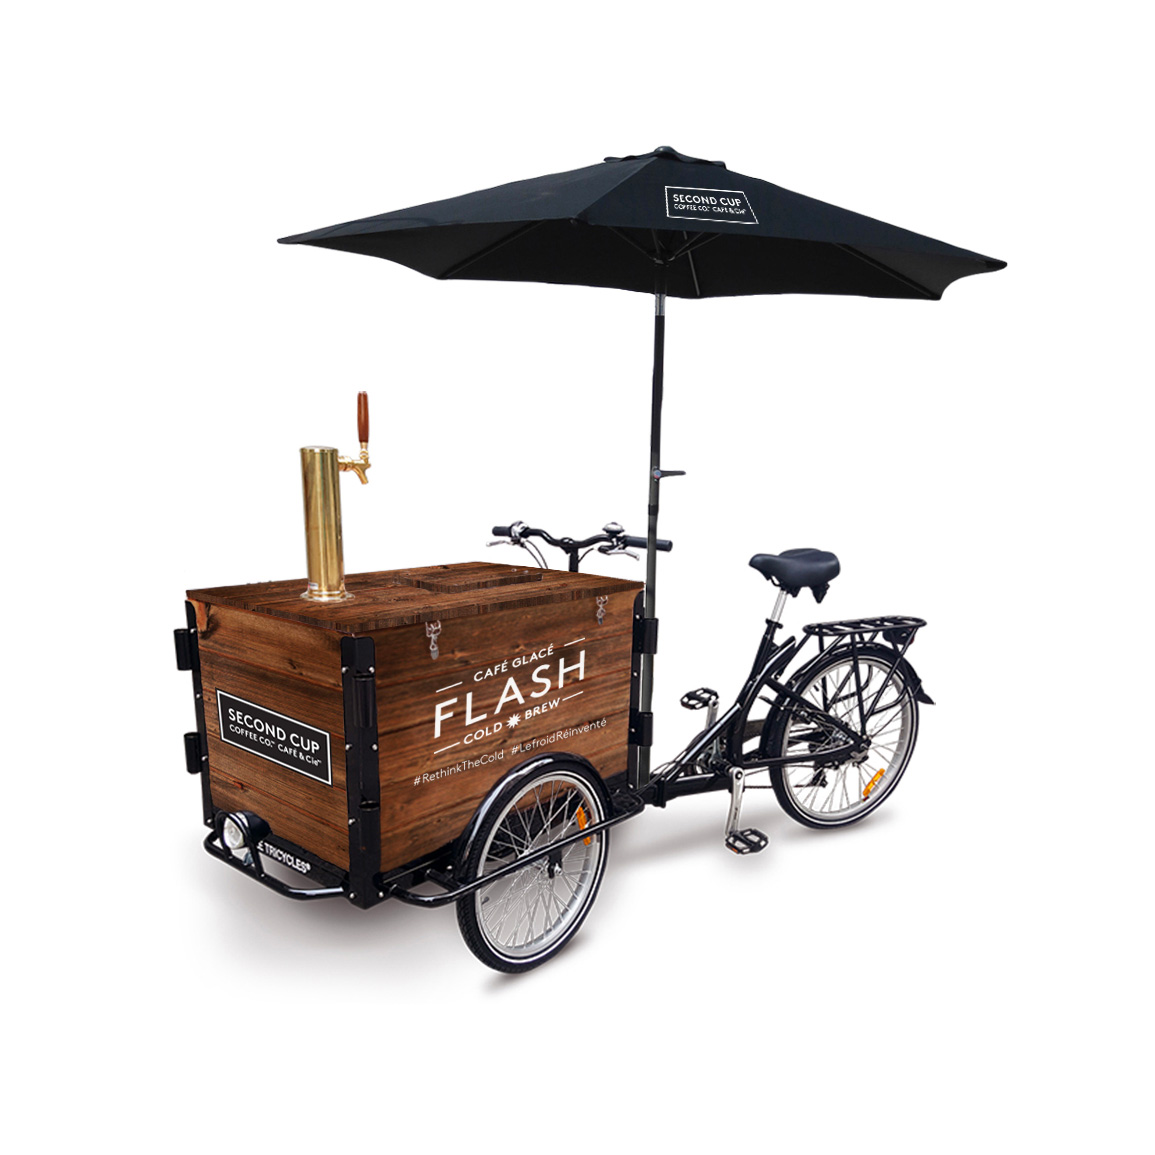 Flash Cold Brew experiential campaign sampling tricycle